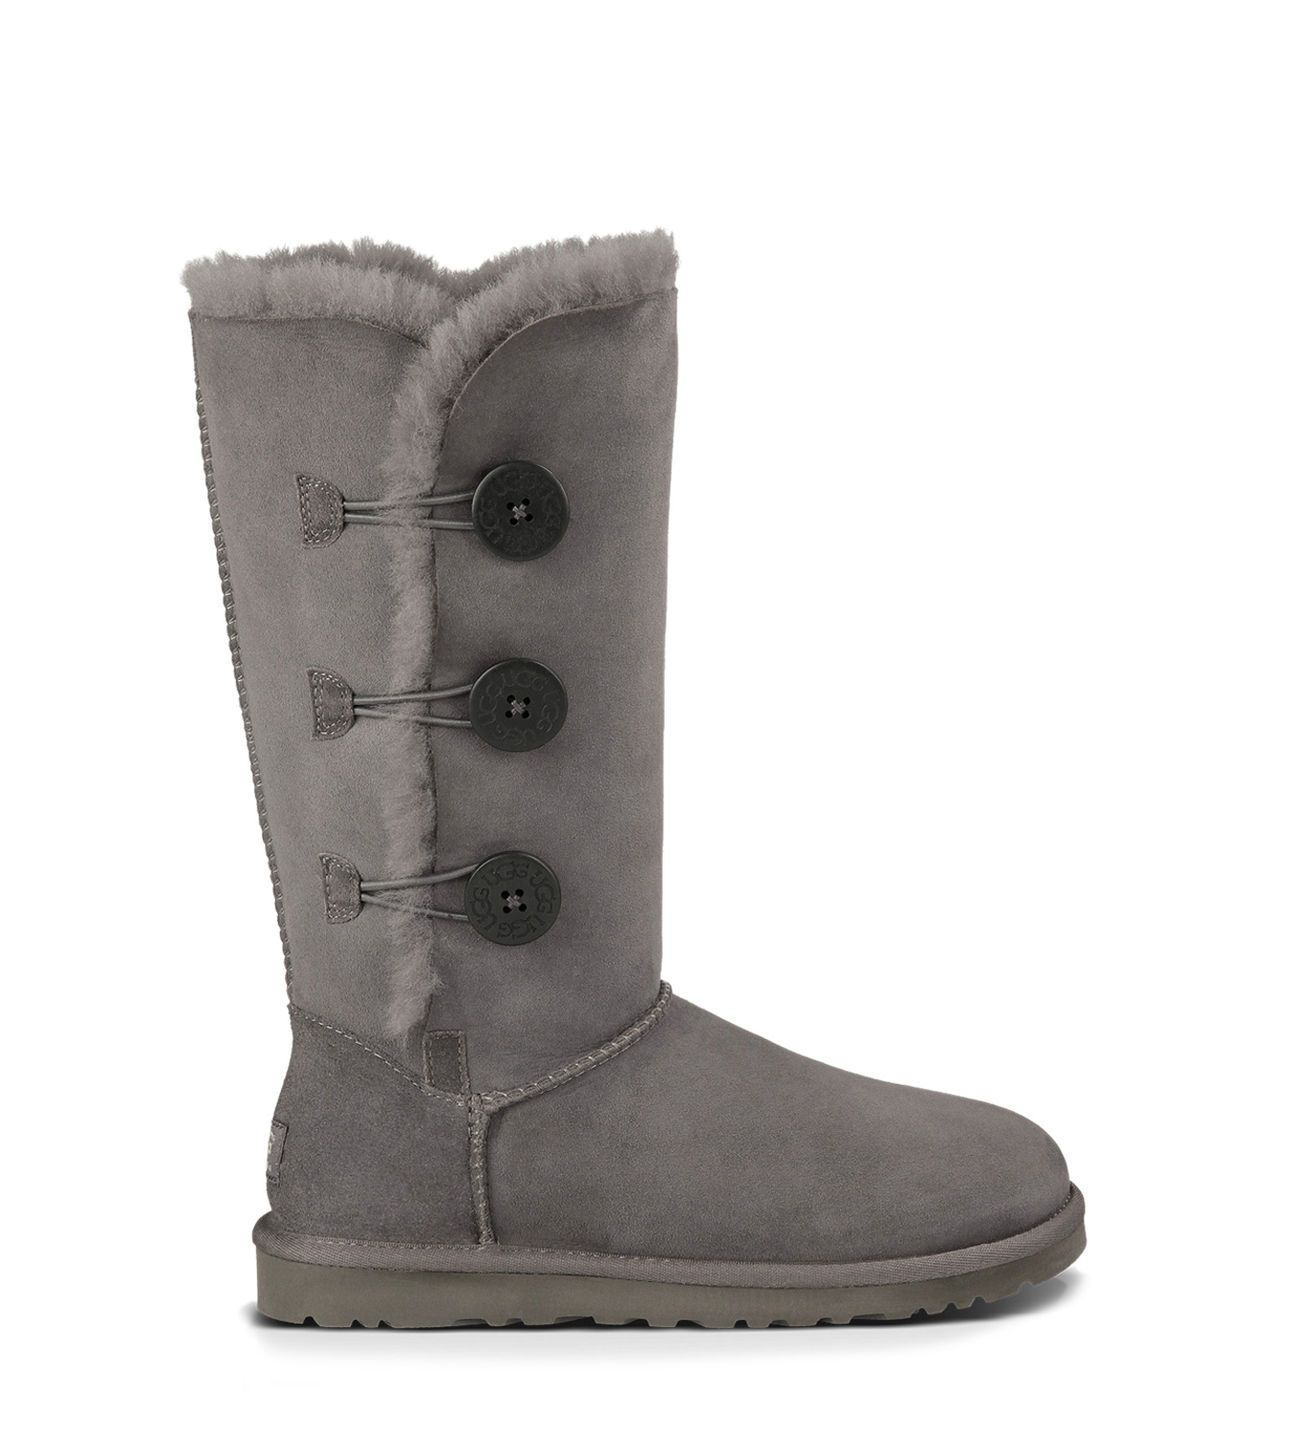 681391ad6b9 Free Shipping & Free Returns on Authentic UGG® Women's Footwear ...